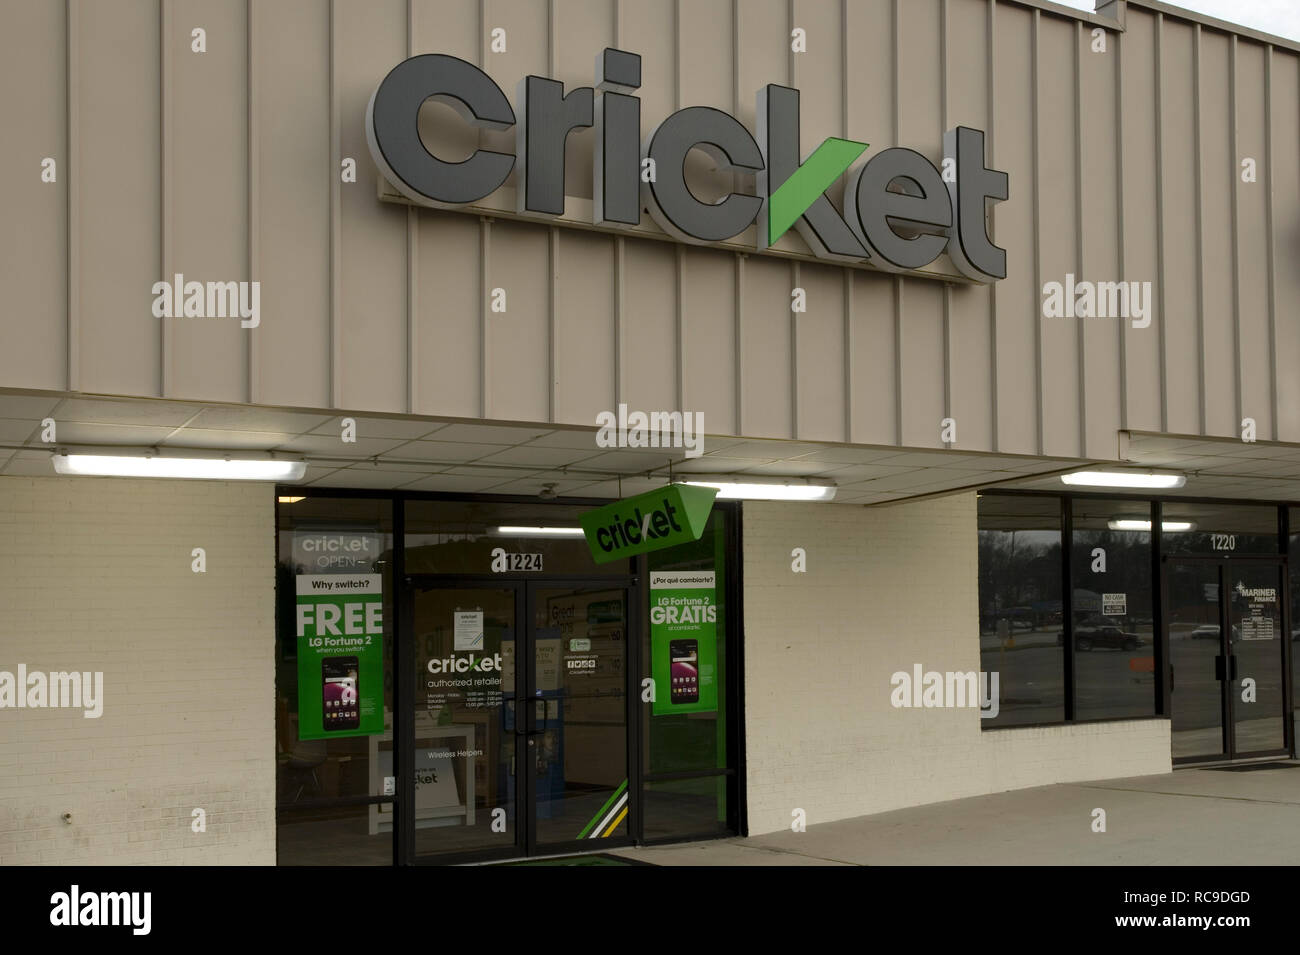 Cricket Cellphone Service Retail Store USA - Stock Image